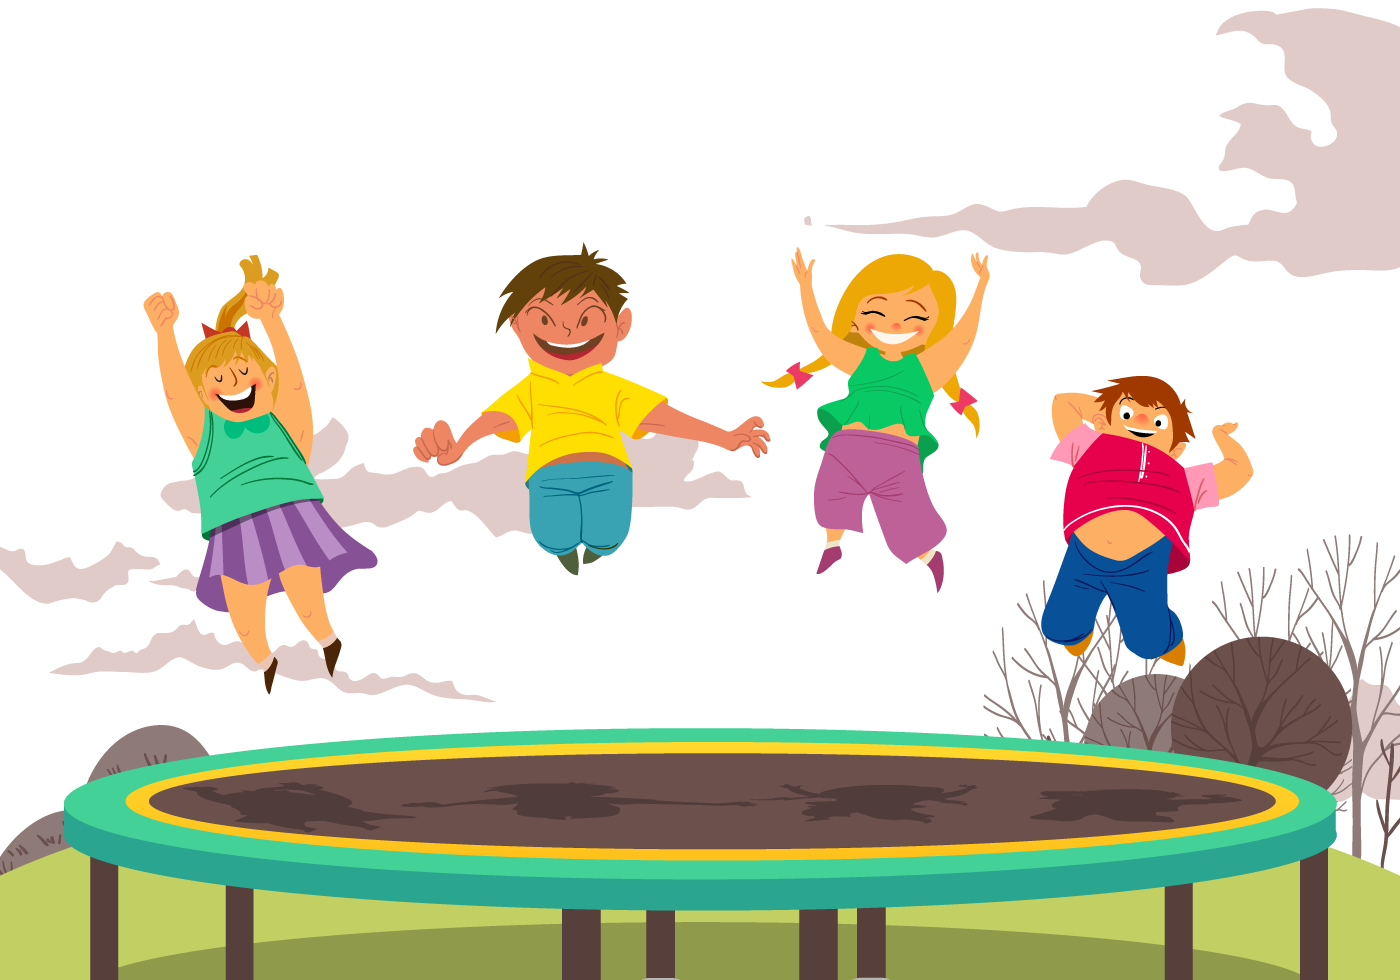 jpg transparent Jumping clipart backyard fun. Trampoline child trampolining happy